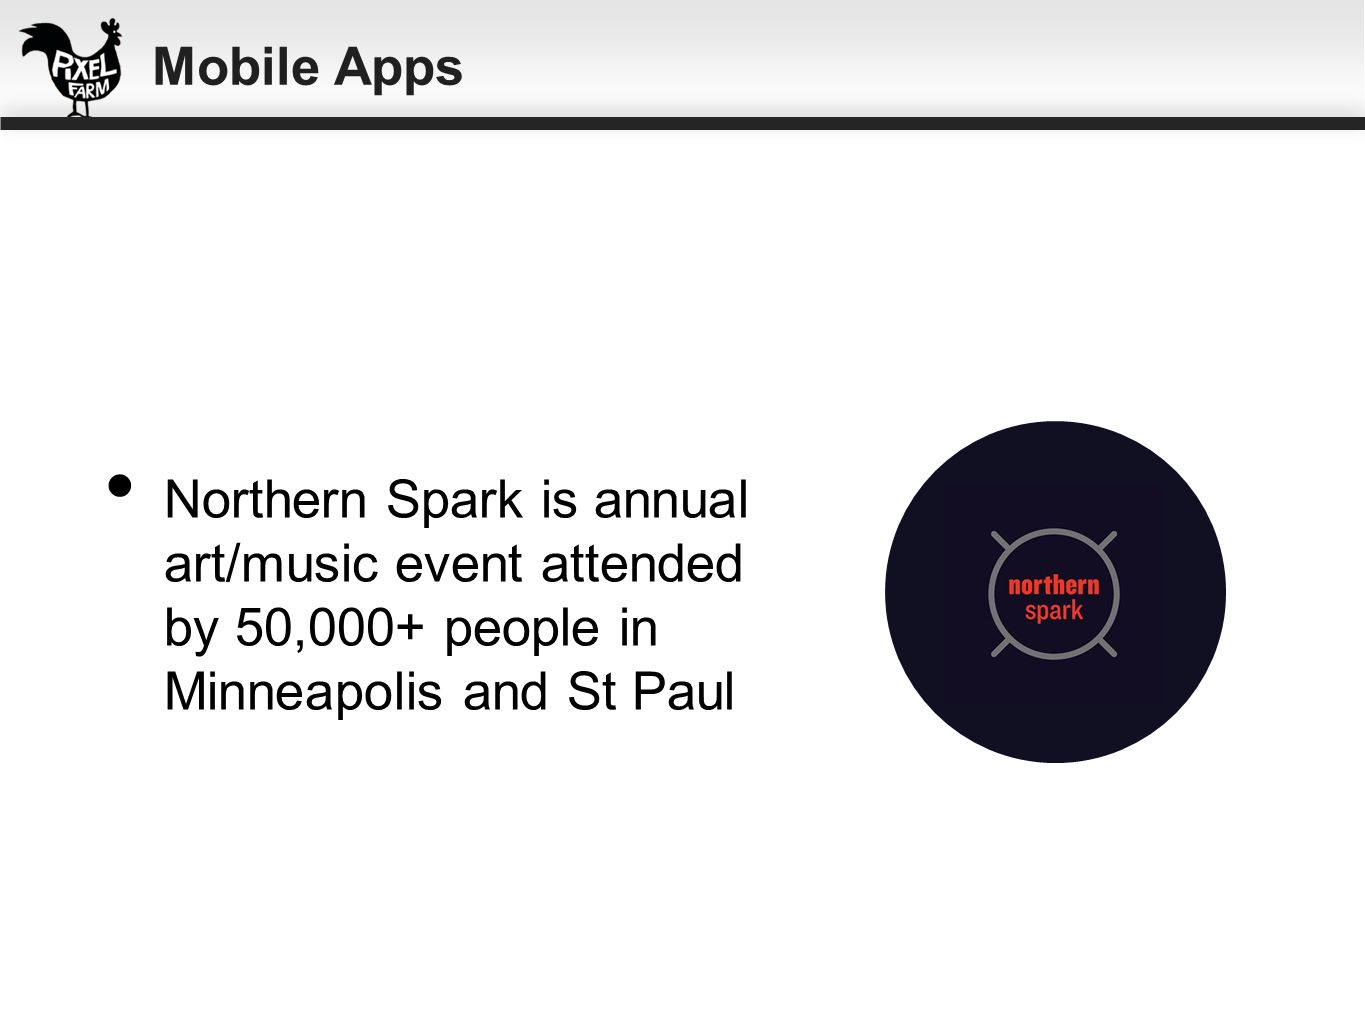 Mobile AppsNorthern Spark is annual art/music event attended by 50,000+ people in Minneapolis and St Paul.